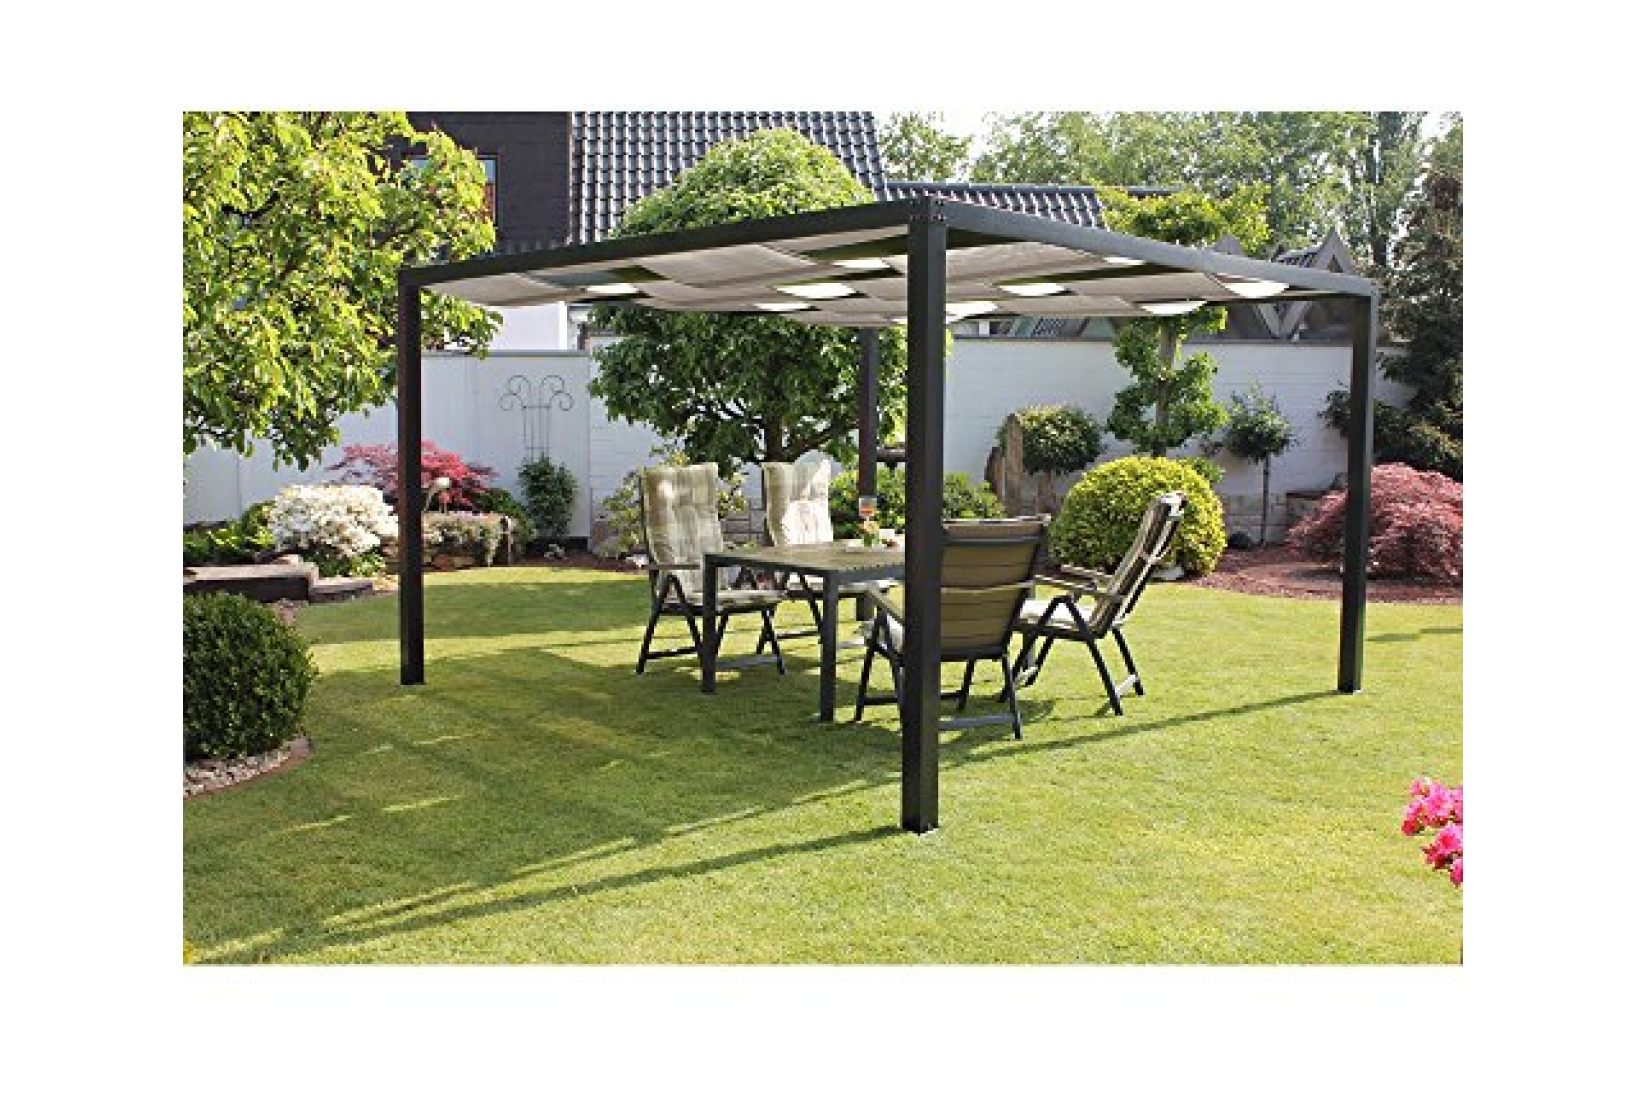 pergola metall schweiz samling av de senaste. Black Bedroom Furniture Sets. Home Design Ideas